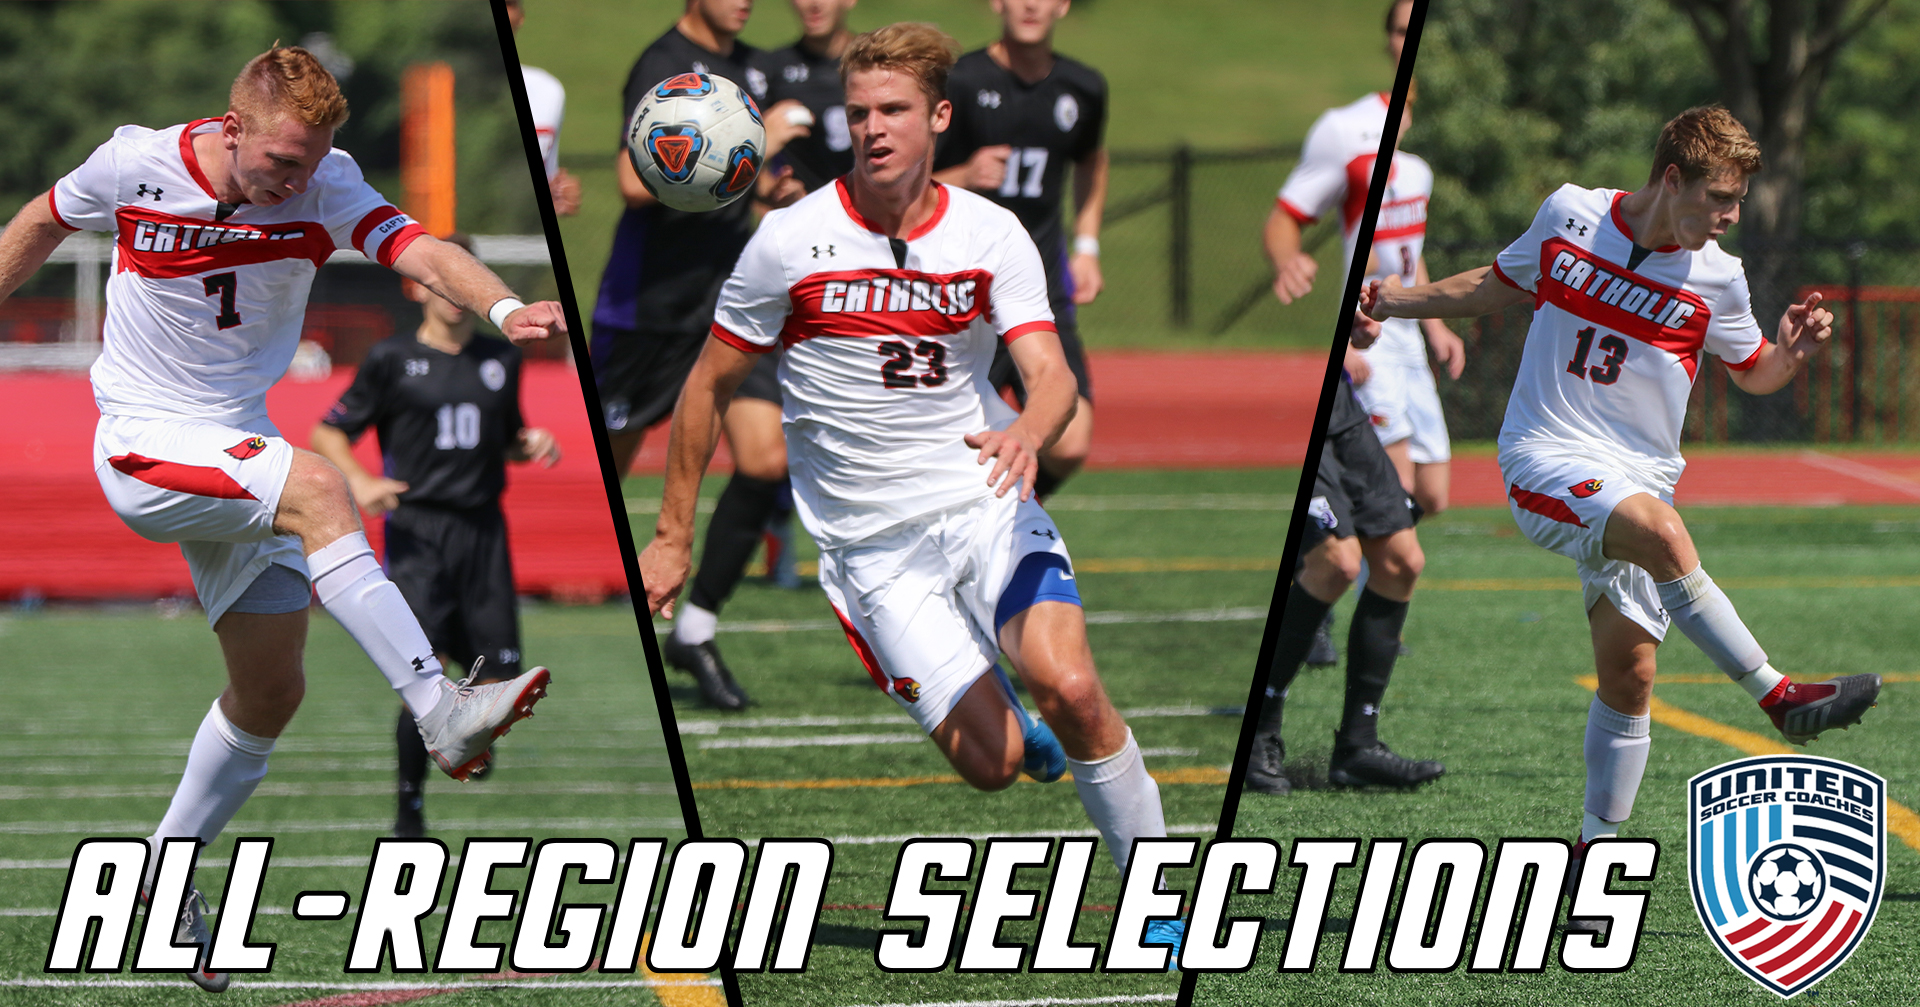 Cardinals Earn Three All-Region Selections